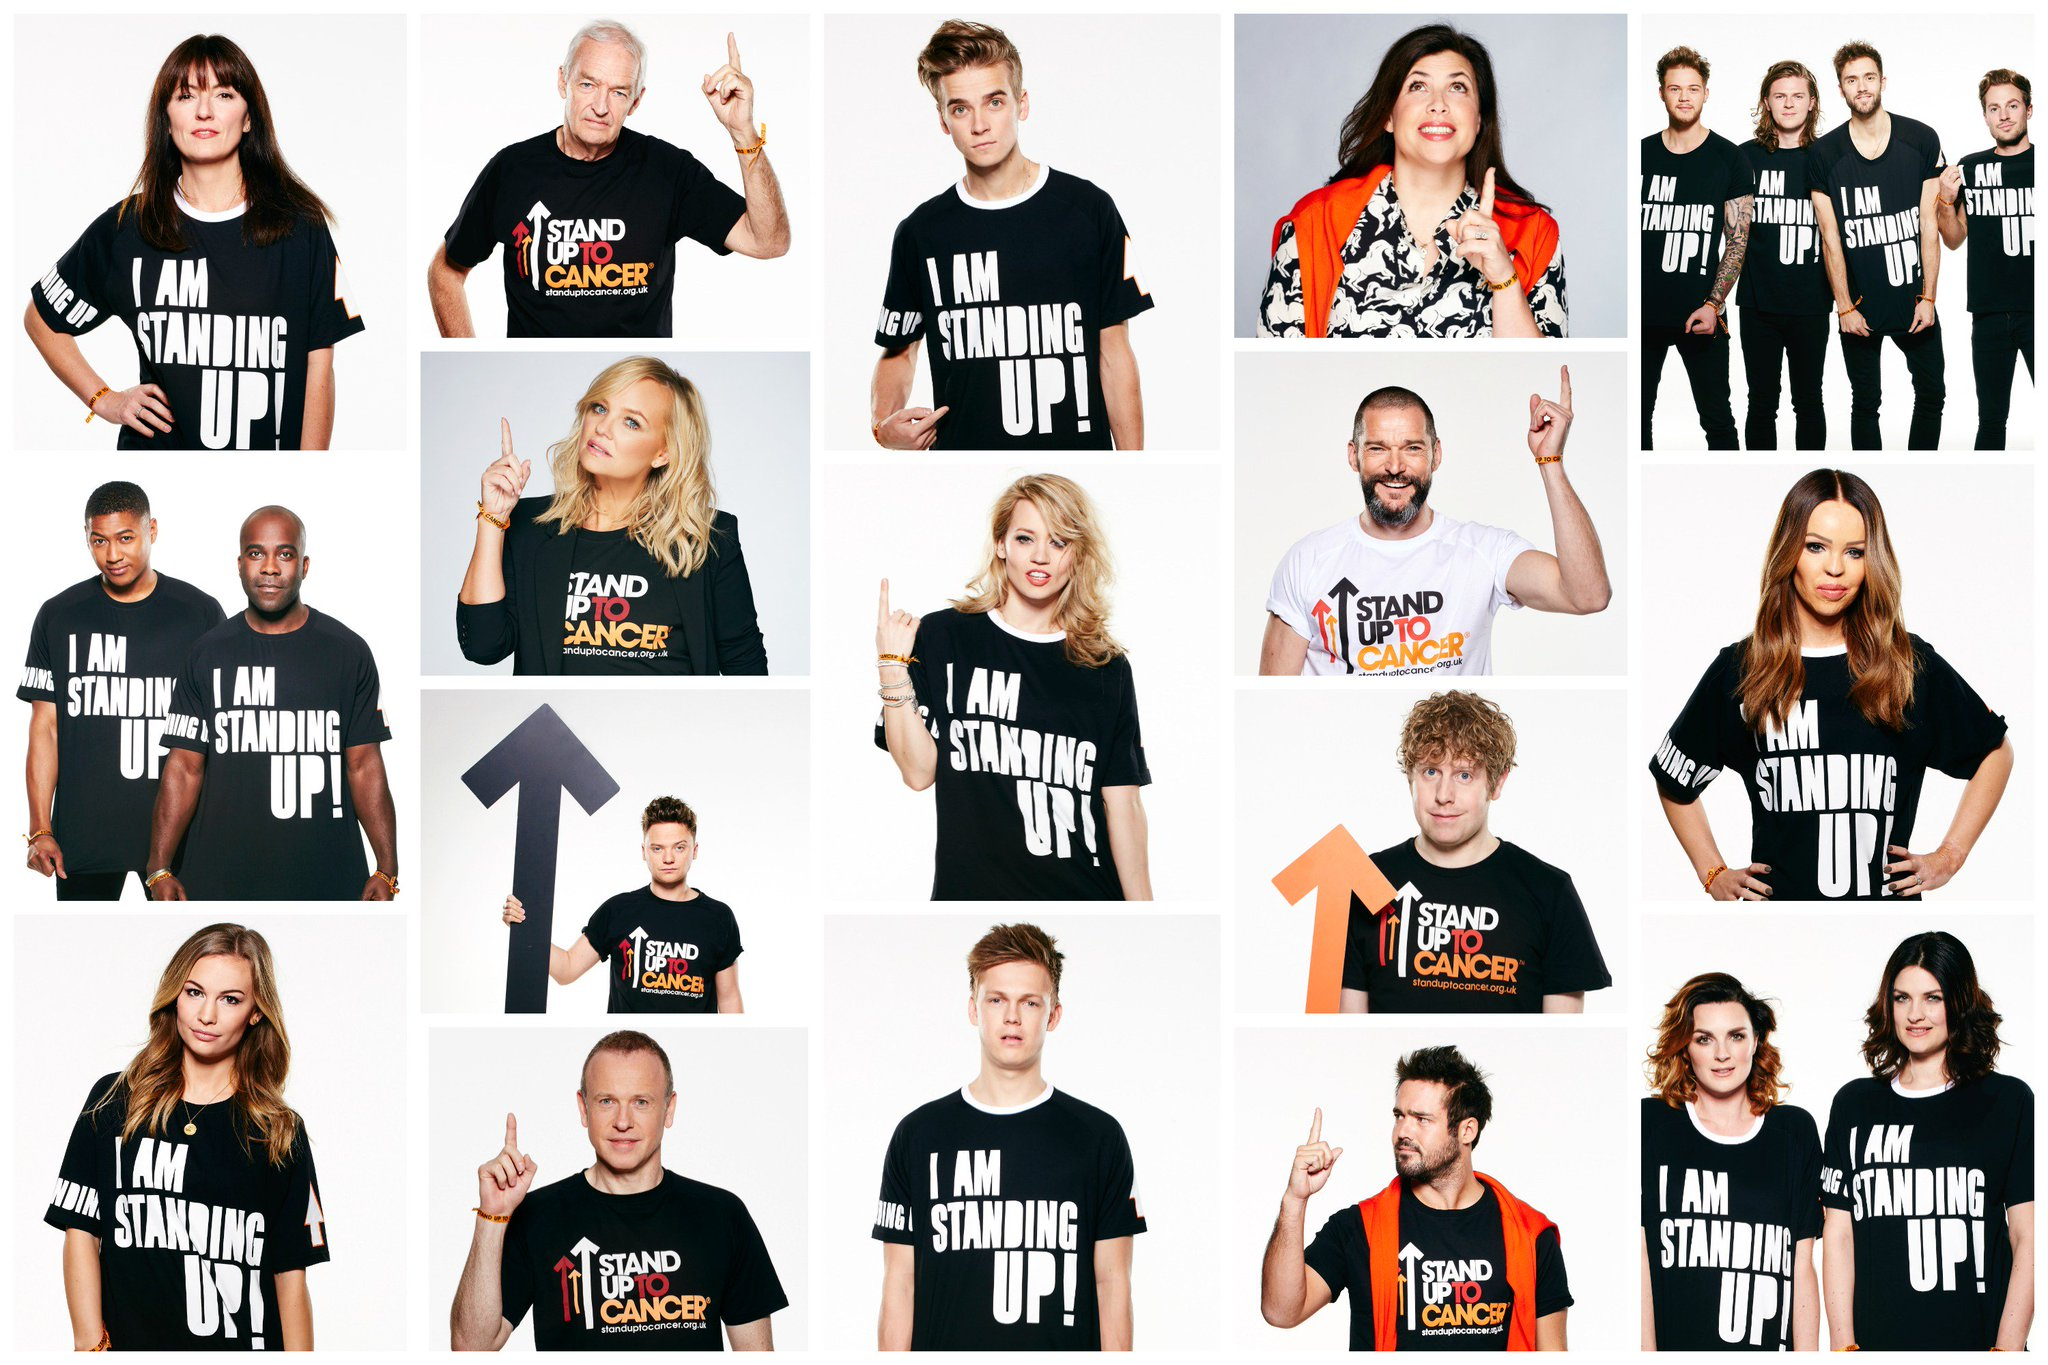 RT @StandUp2C: #StandUpToCancer is back this October! Join the rebellion now. https://t.co/6bQx4LxmRy https://t.co/7DDUFXilH7